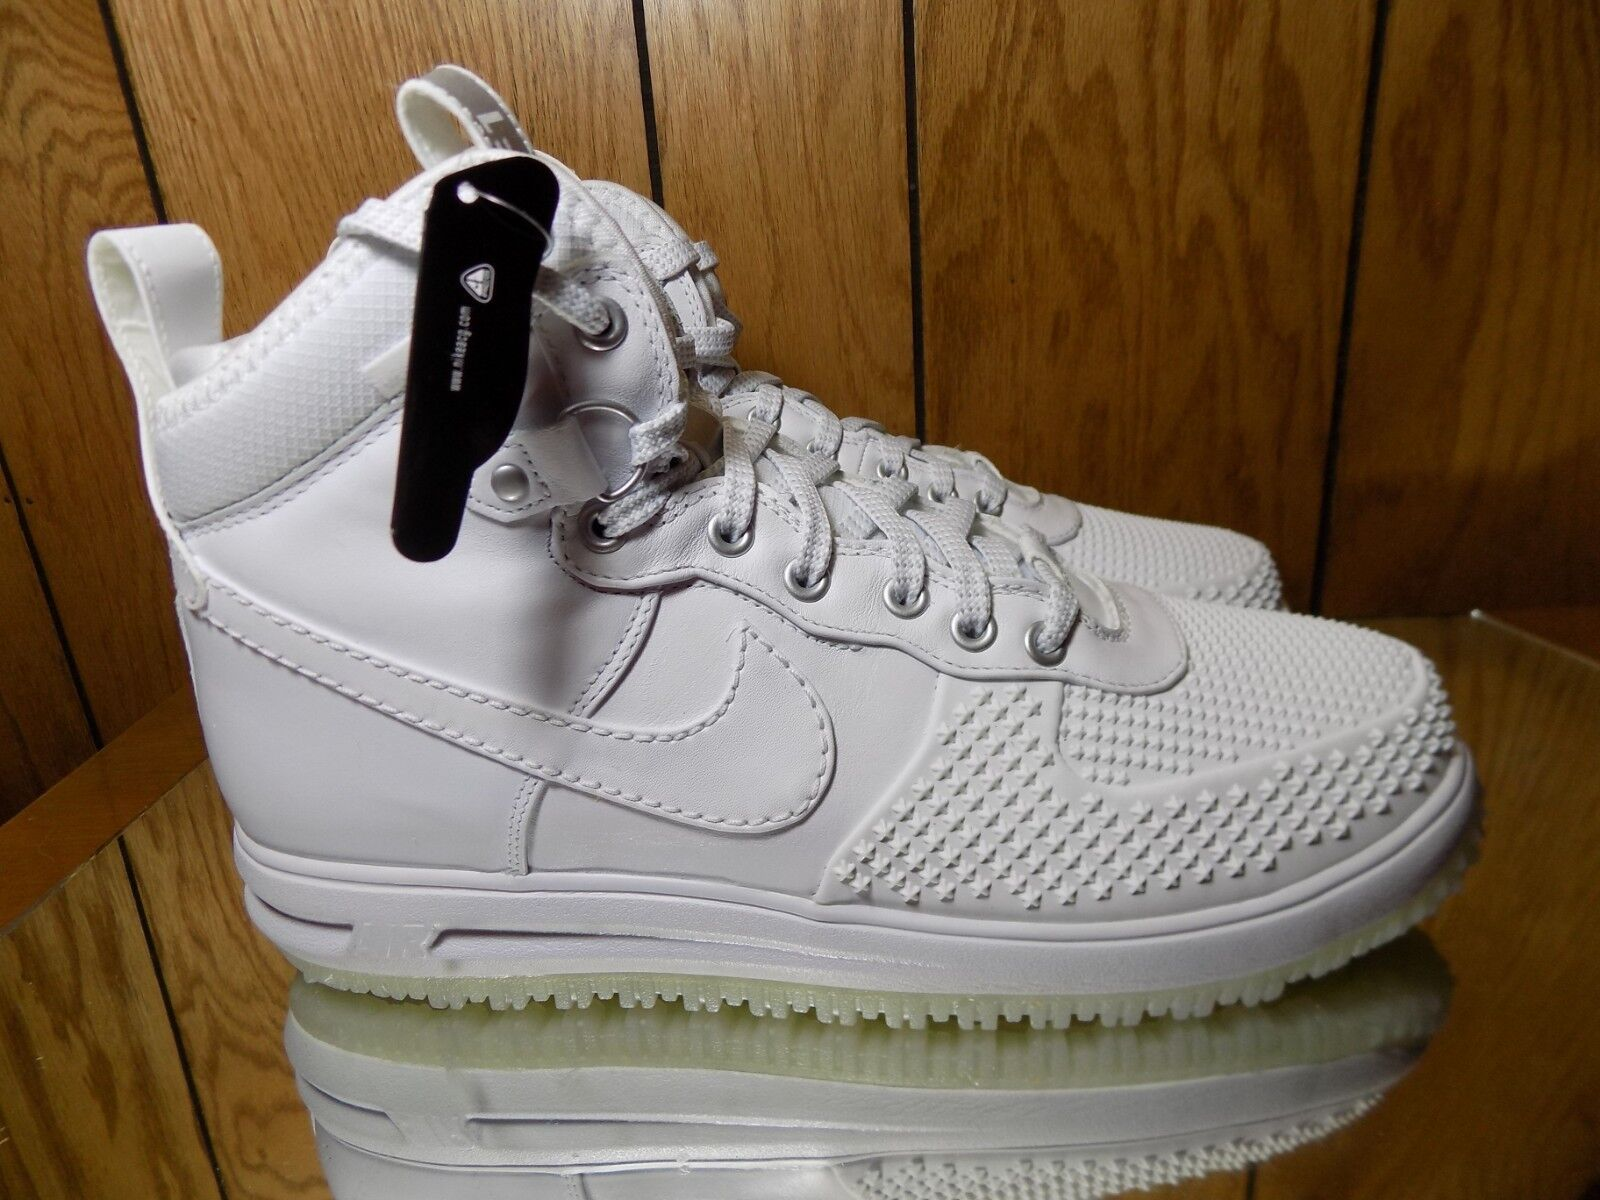 Nike Lunar Force 1 Duckboot AF1 805899-101 Triple White Mens 10.5 NEW